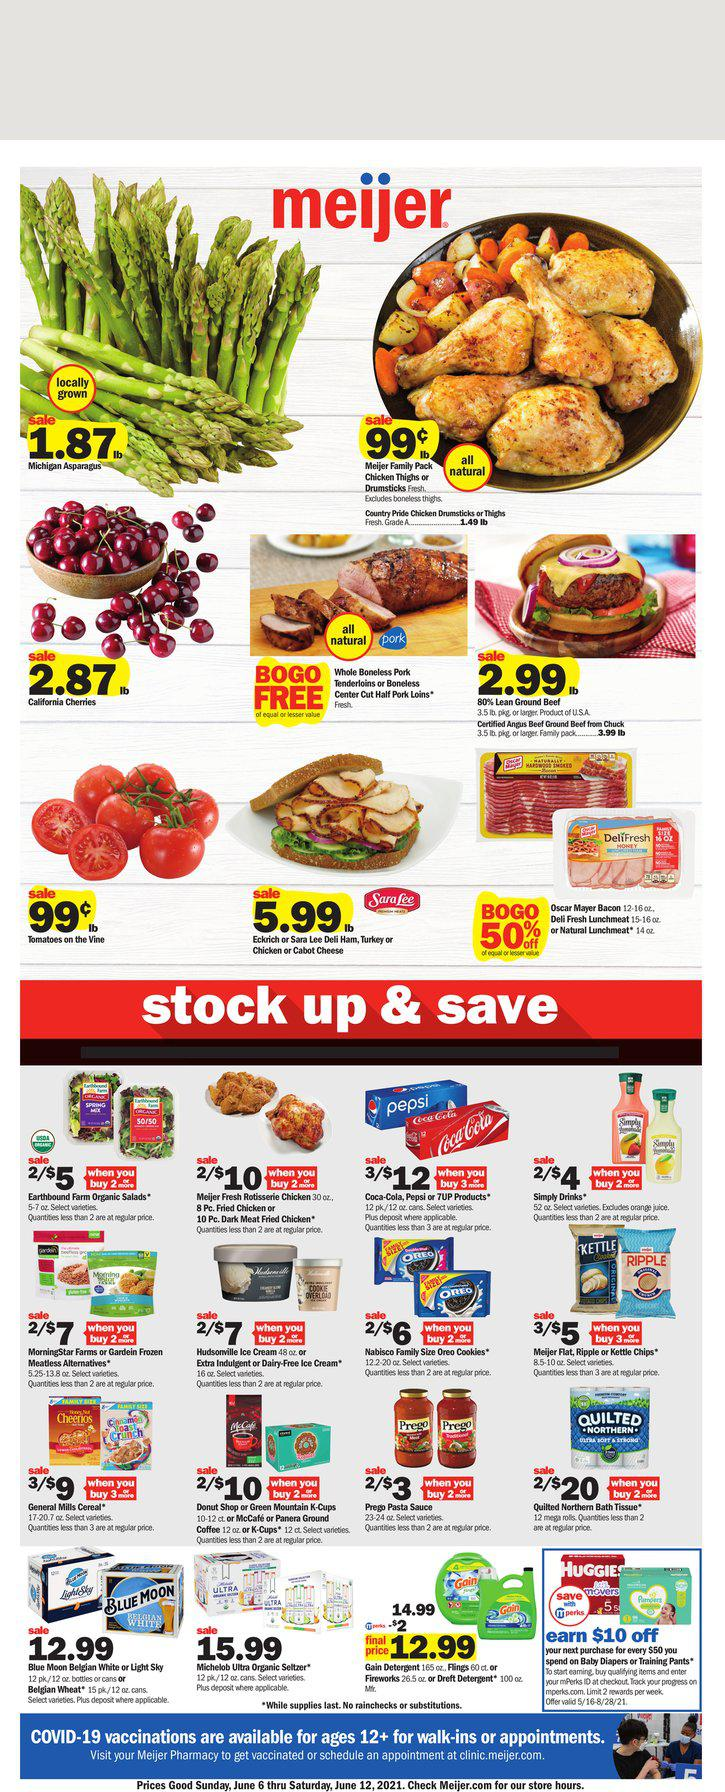 06.06.2021 Meijer ad 1. page